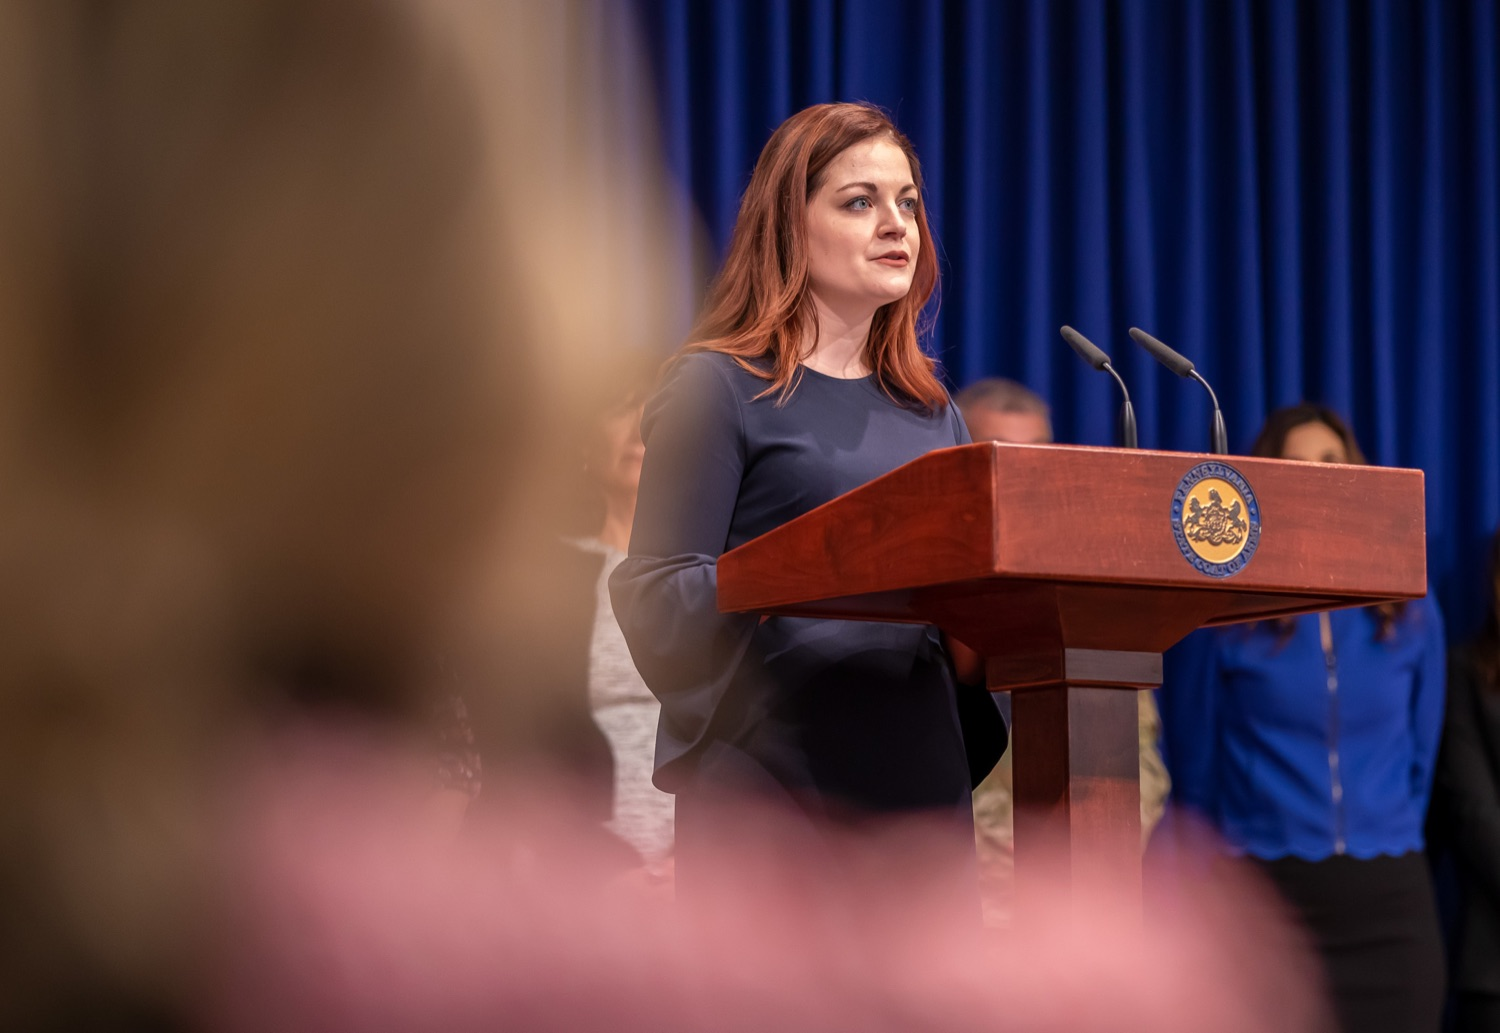 """<a href=""""http://filesource.abacast.com/commonwealthofpa/photo/17711_DHS_SuicidePrevention_AG_13.jpg"""" target=""""_blank"""">⇣Download Photo<br></a>Harrisburg, PA.  Caitlin Palmer of the Department of Human Services, speaks at todays event discussing the initial report of Pennsylvanias Suicide Prevention Task Force based on the statewide listening sessions held throughout fall 2019. The work of the Suicide Prevention Task Force is a complement to the goals and strategies surrounding the governors Reach Out PA: Your Mental Health Matters initiative announced earlier this month and his Executive Order to protect vulnerable populations signed last year.  January 14, 2020."""